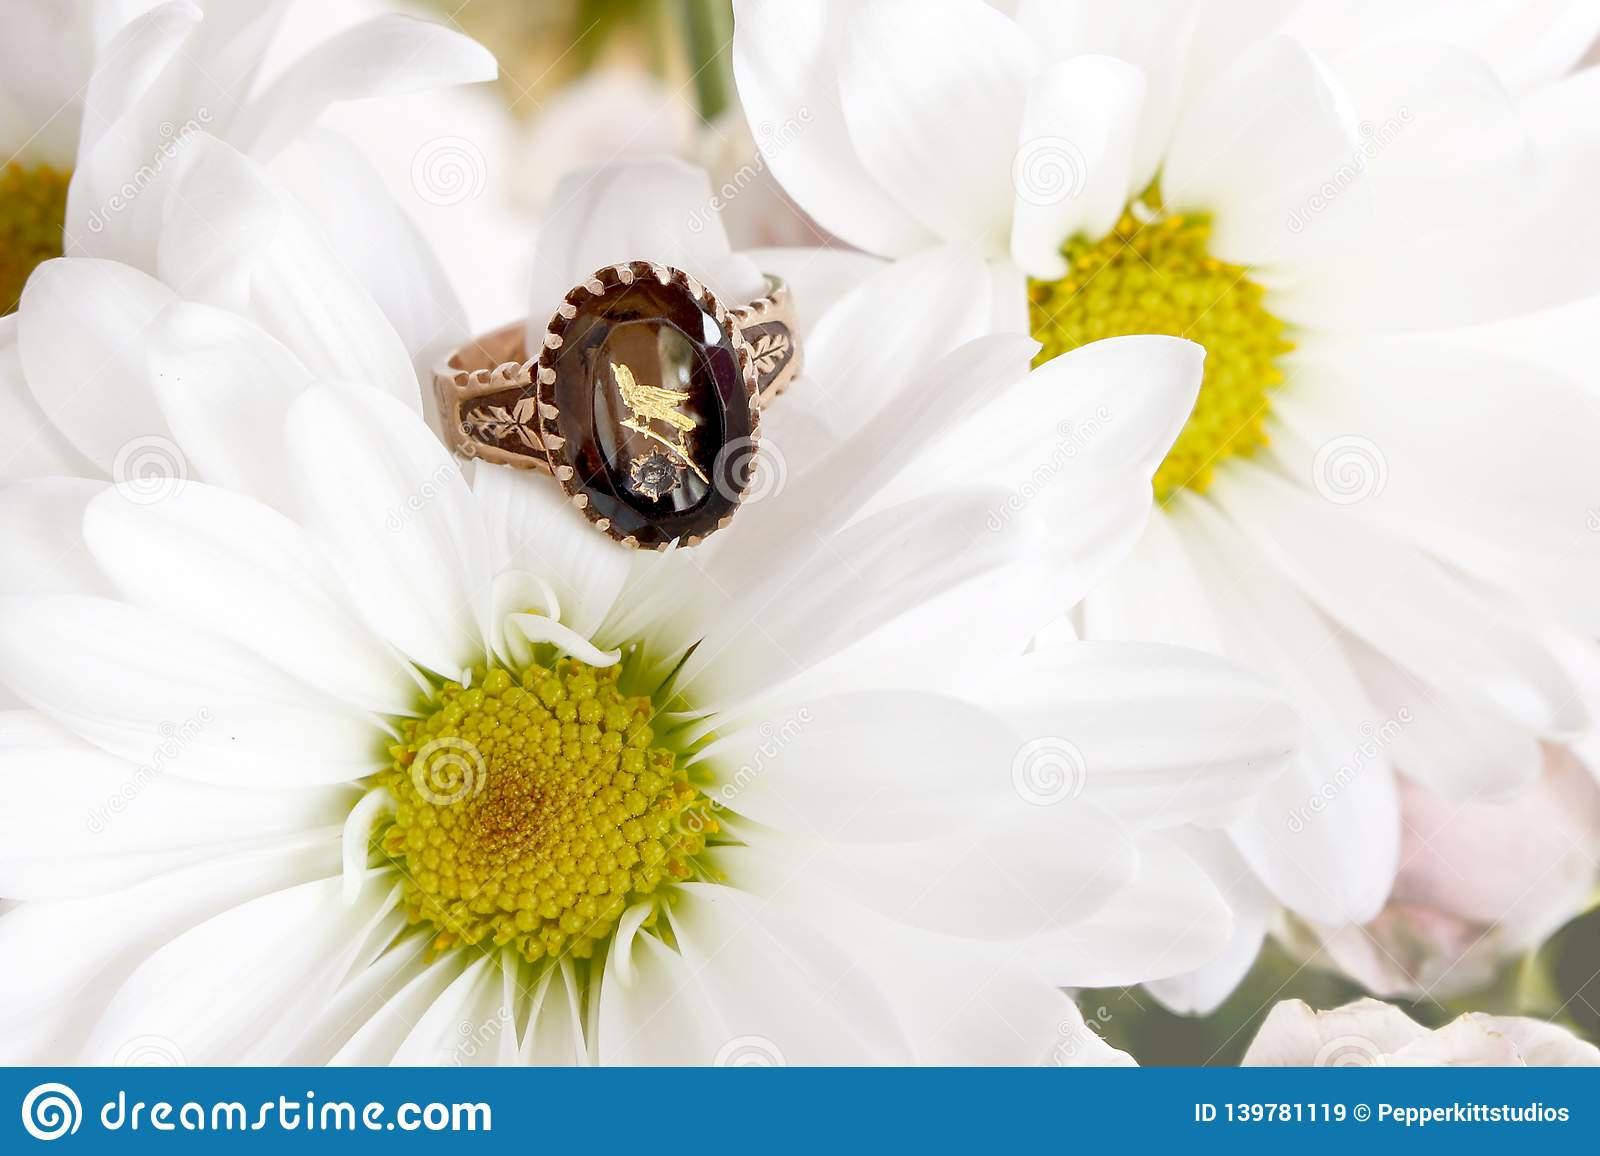 Victorian Amethyst Rose Gold Ring with Etched Bird on Daisy Mums